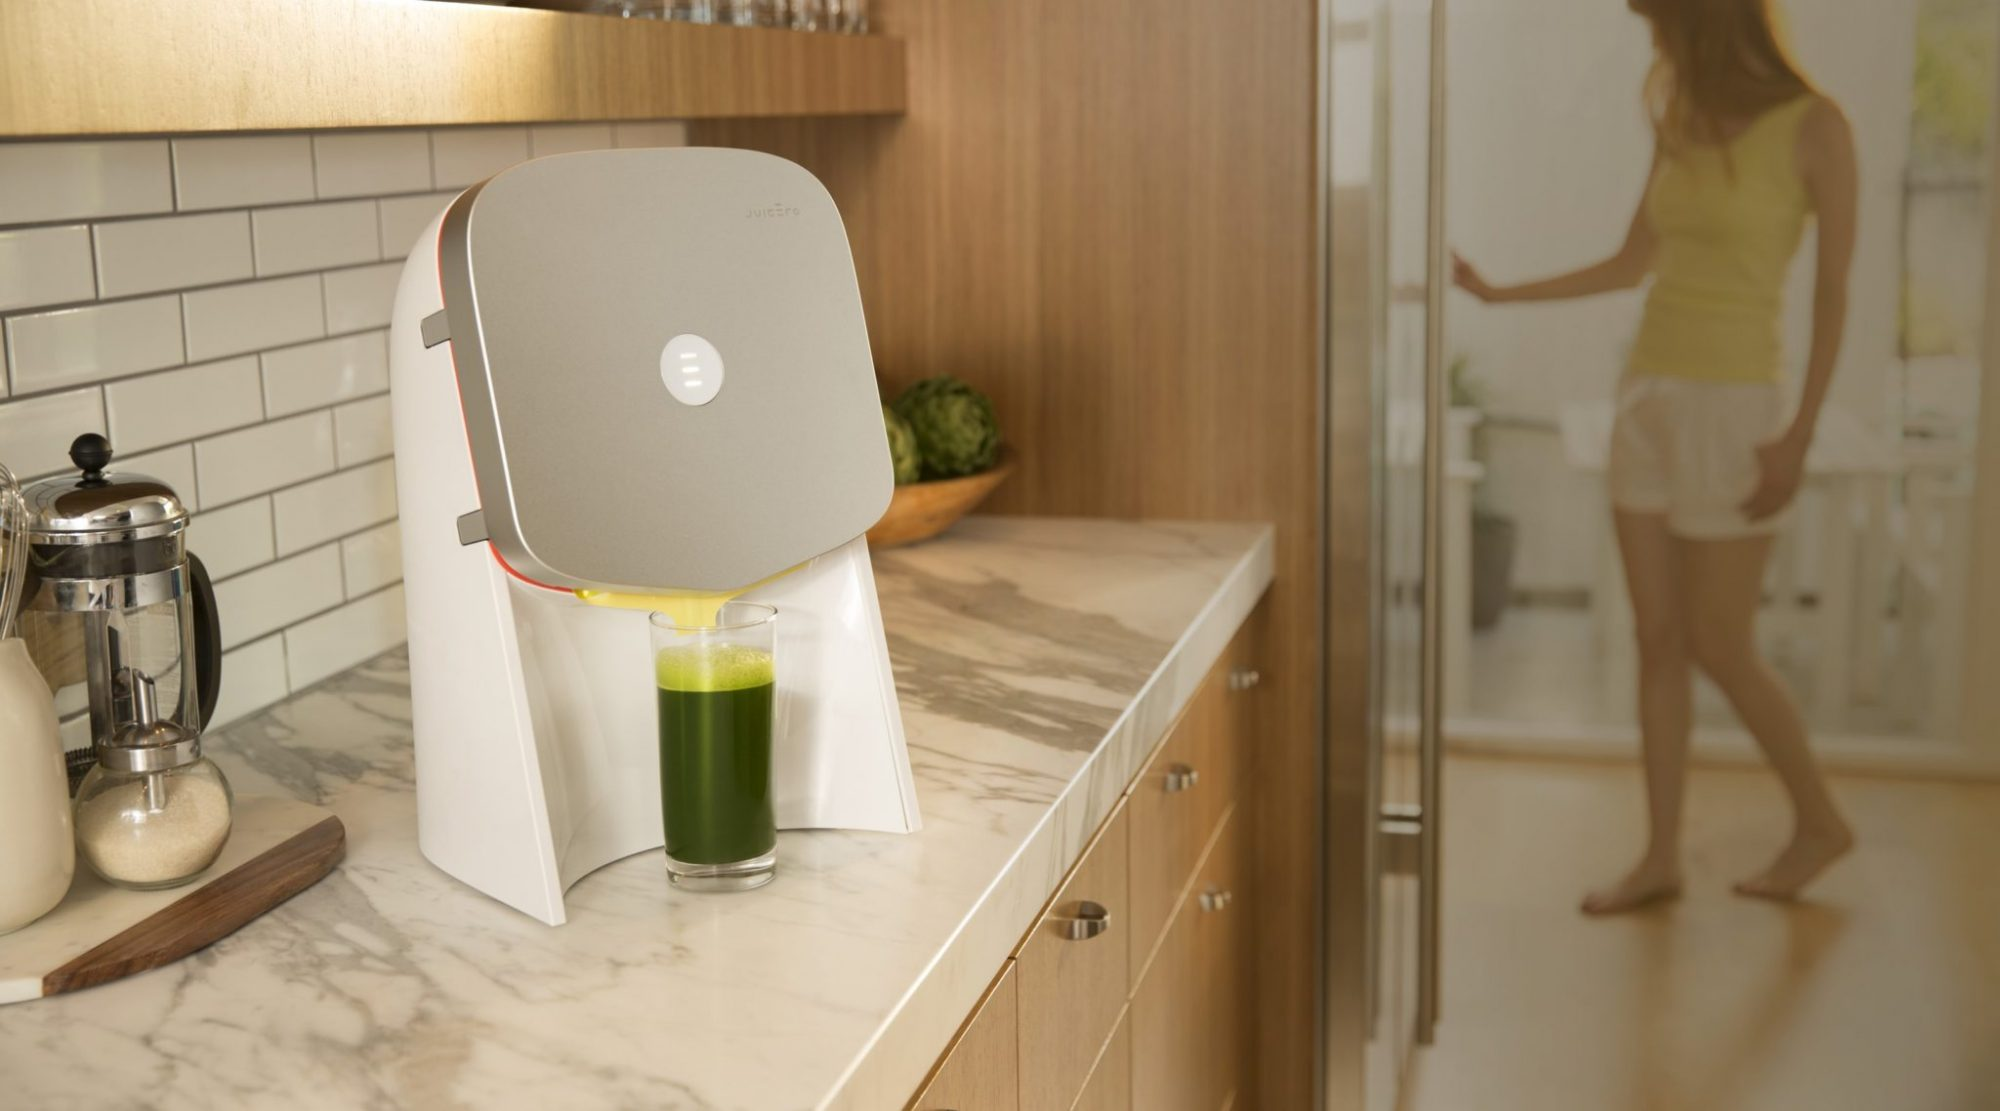 EC: This $400 Juicer Is Worse at Juicing Than Just Using Your Hands